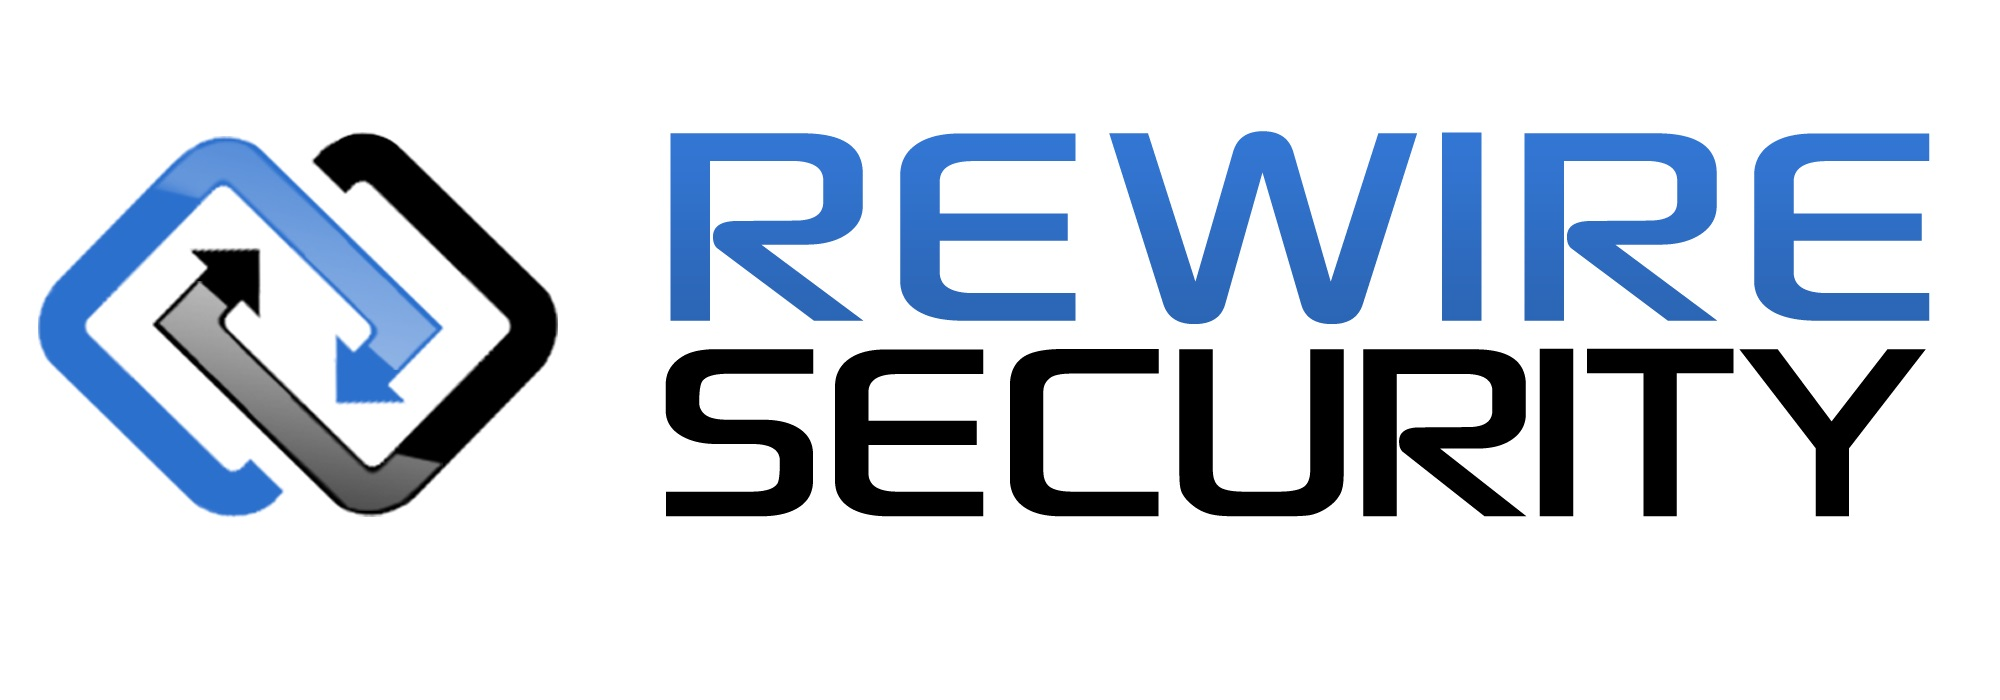 Rewire Security announces a Major Software update for GPSLive